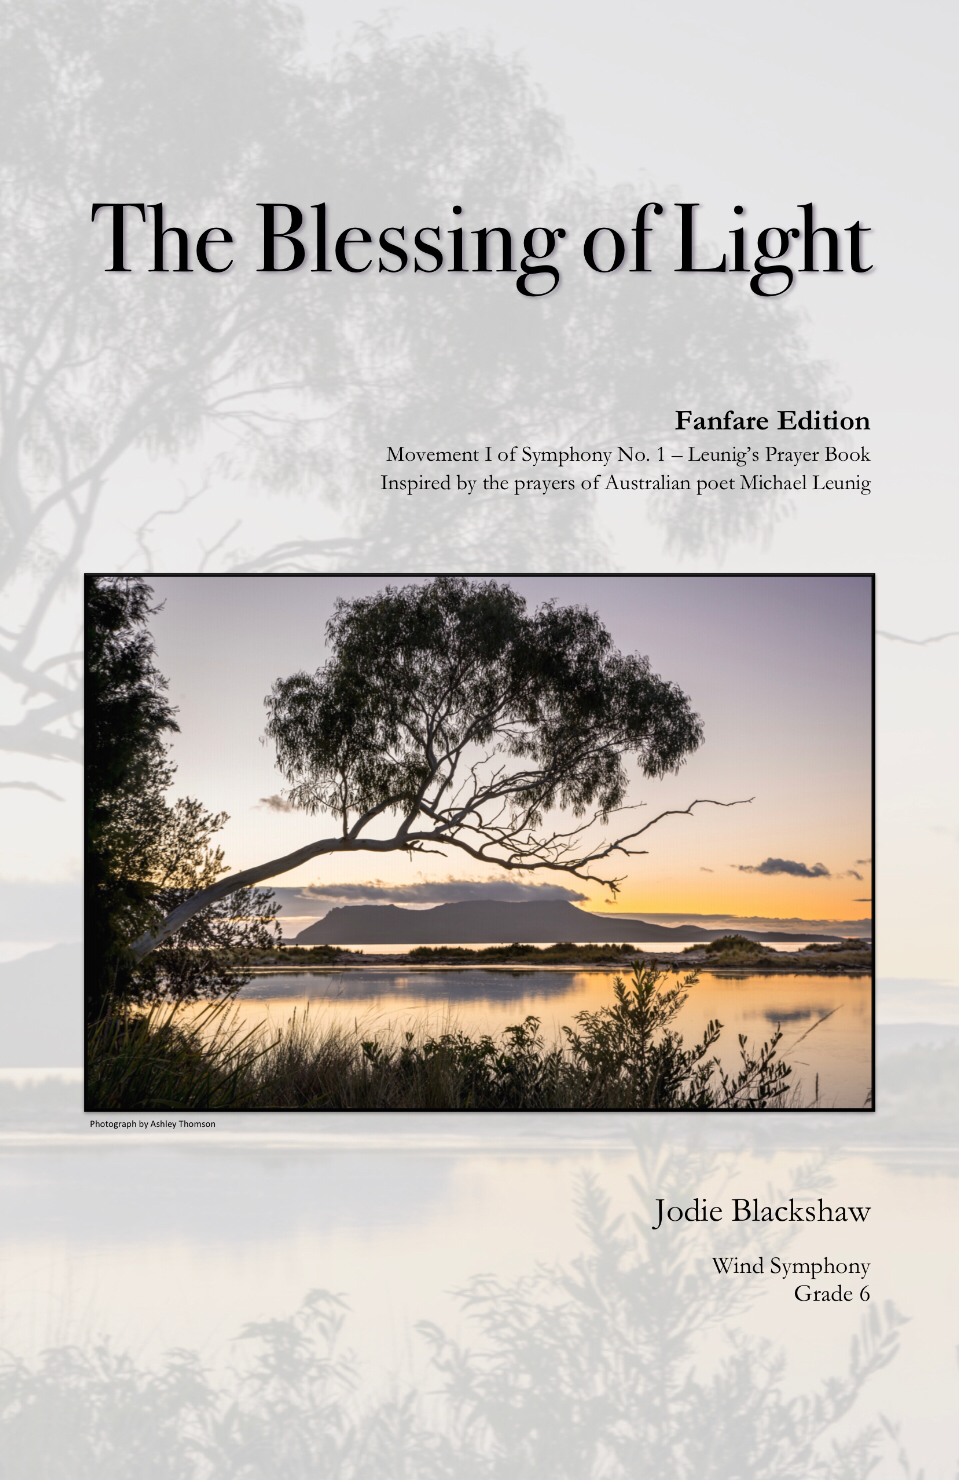 The Blessing Of Light by Jodie Blackshaw